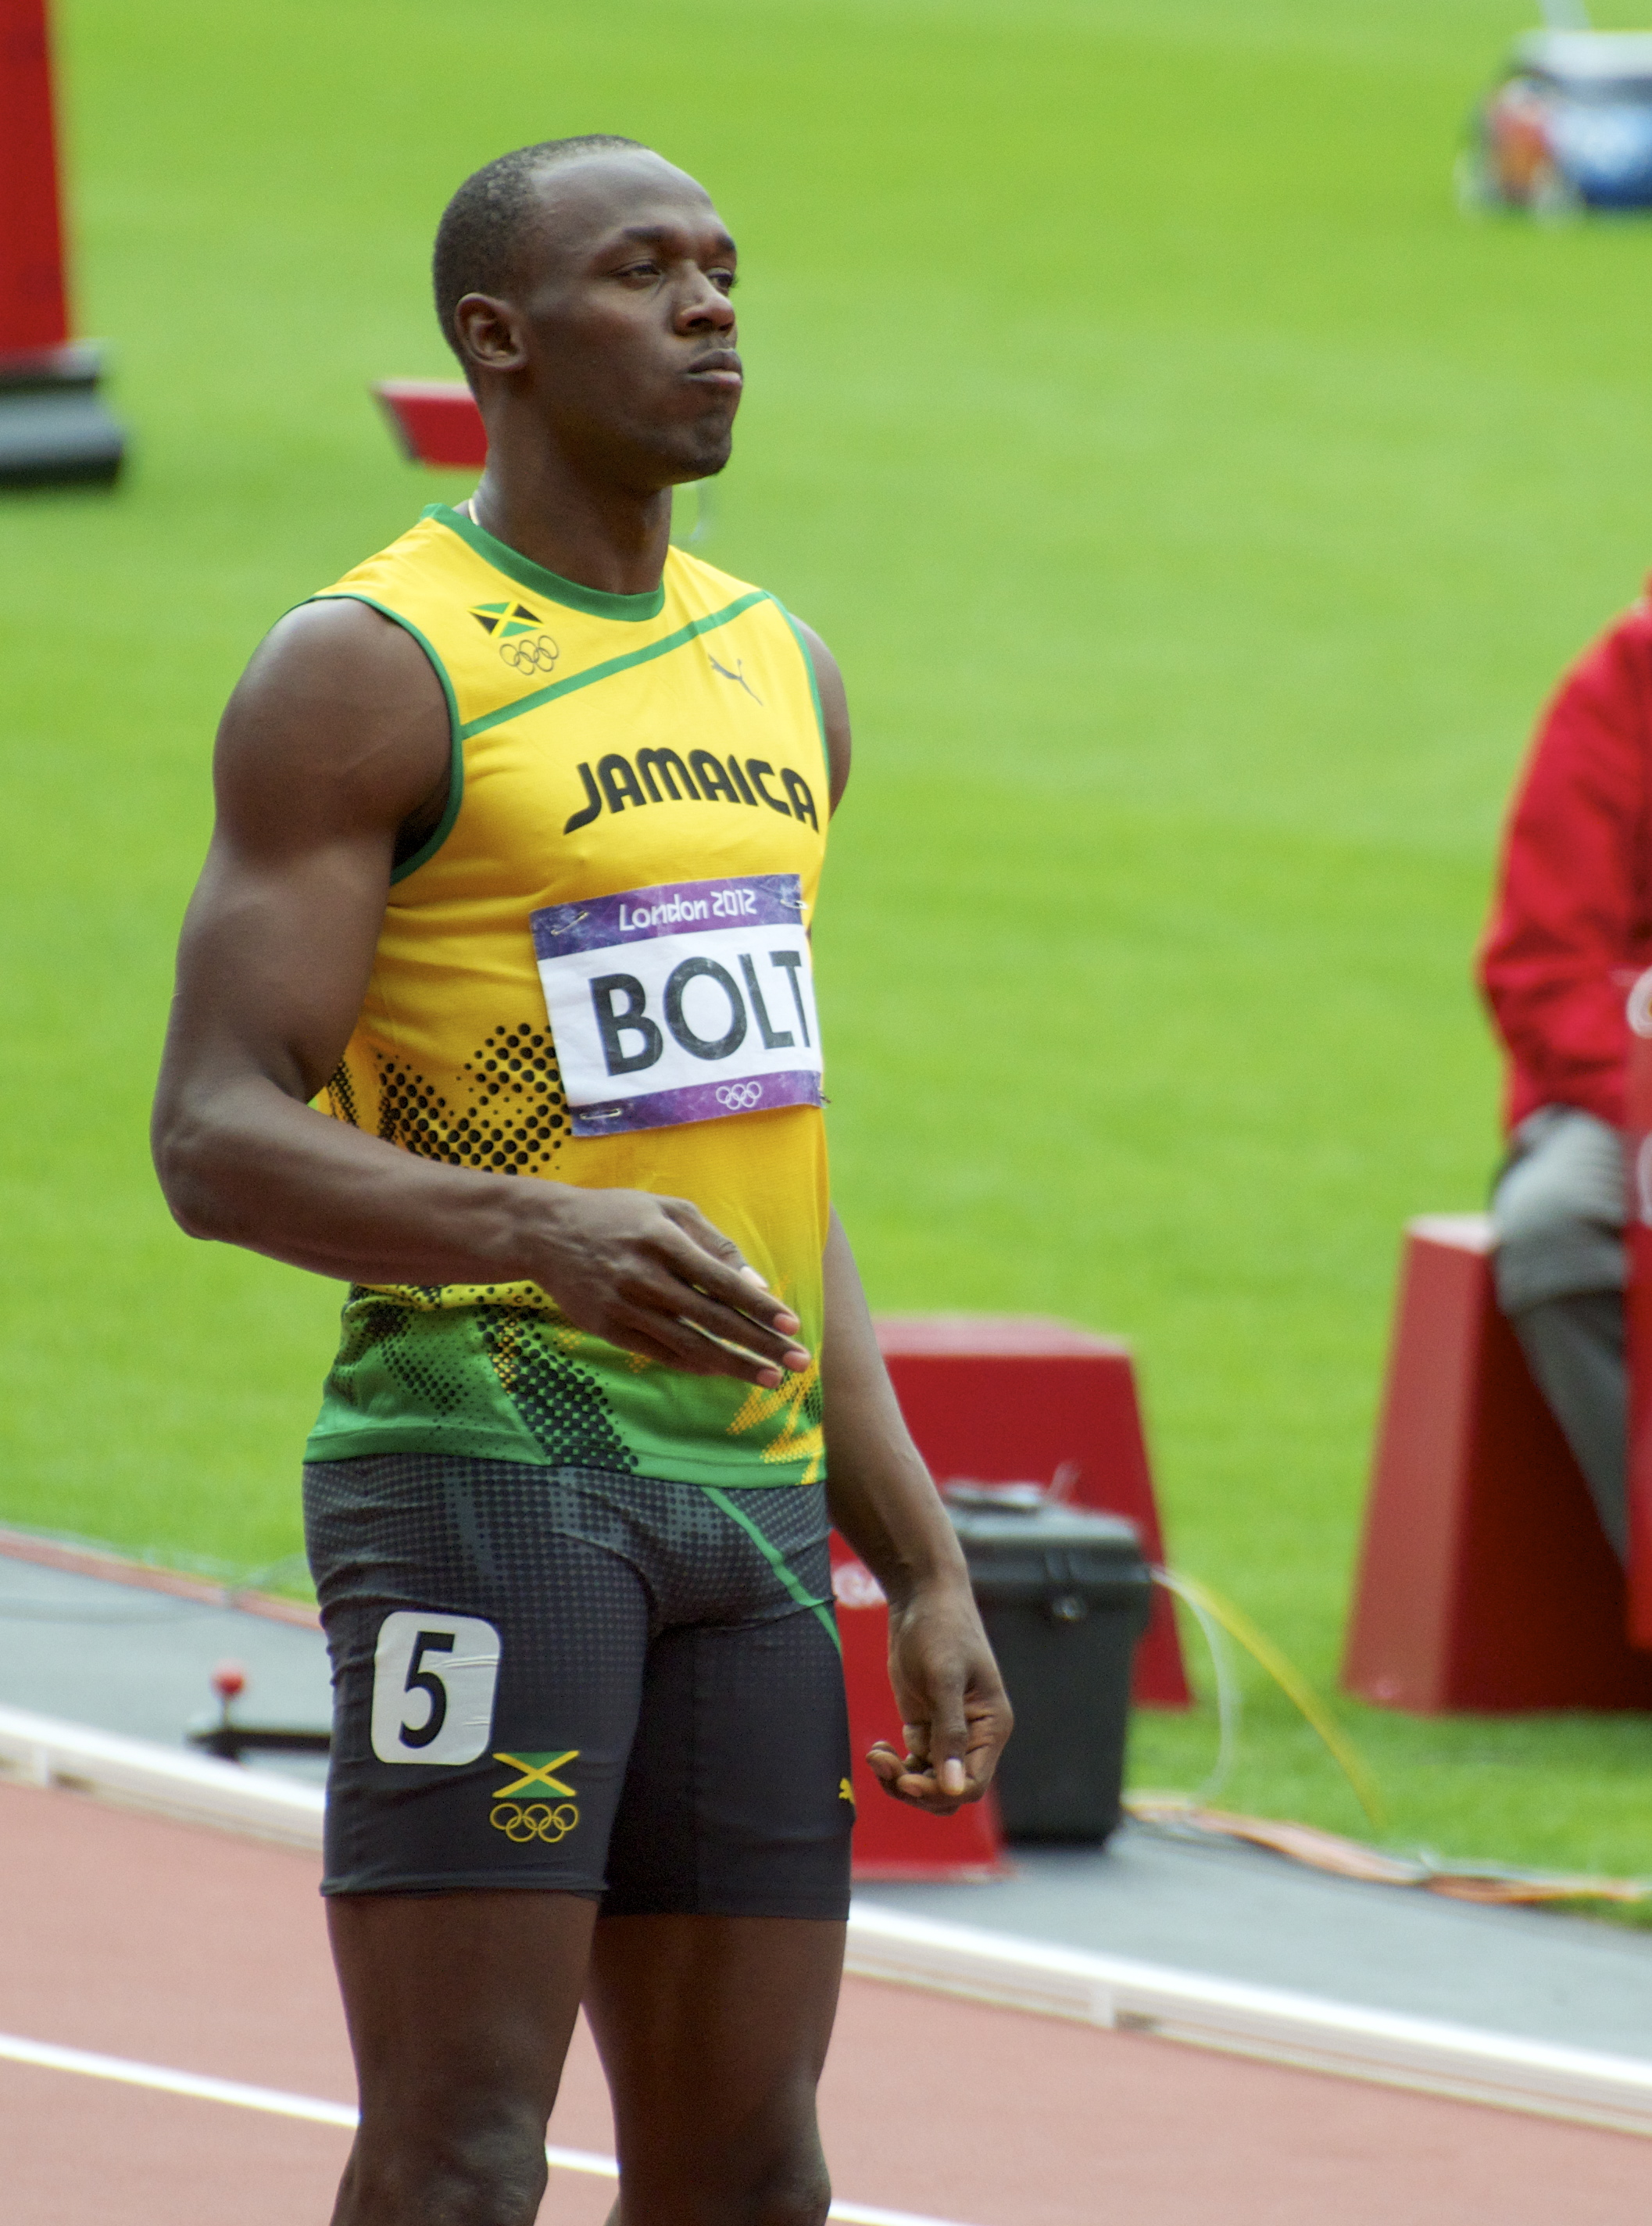 Bolt at the 2012 Summer Olympics